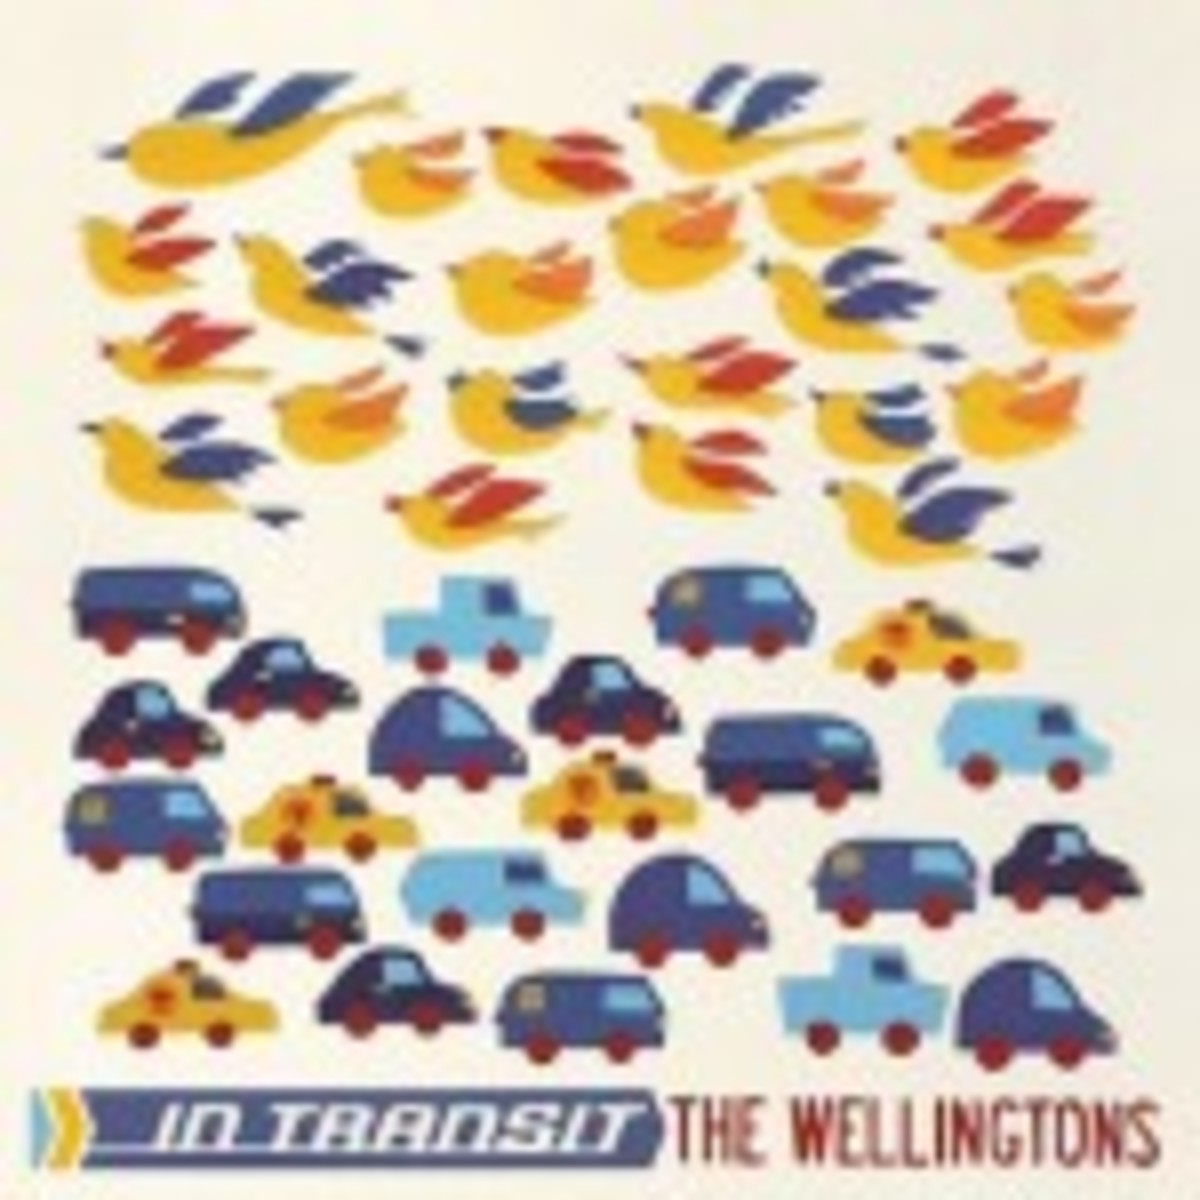 The Wellingtons